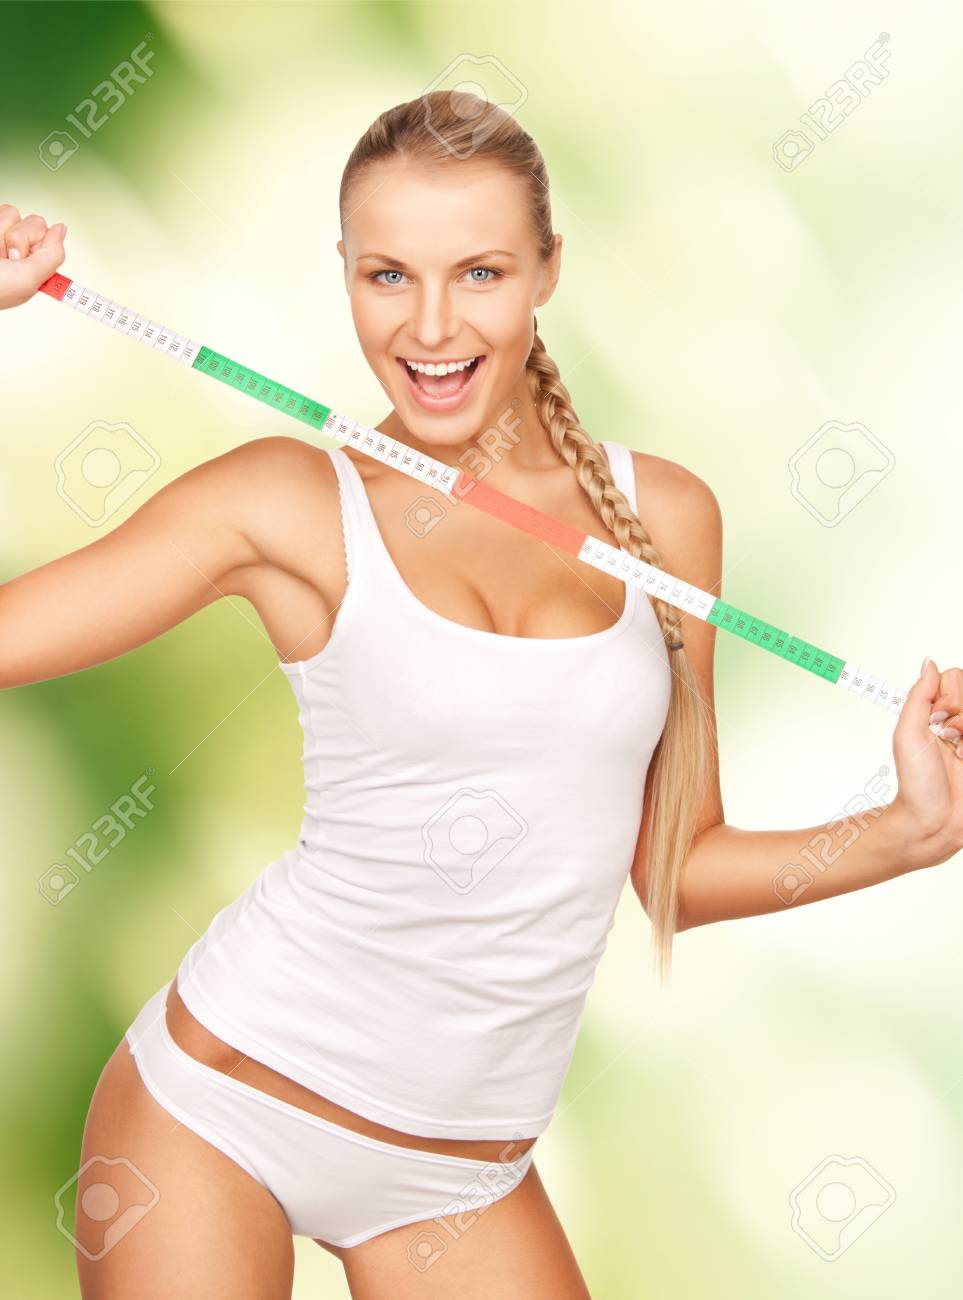 picture of young beautiful woman with measure tape Stock Photo - 16547734